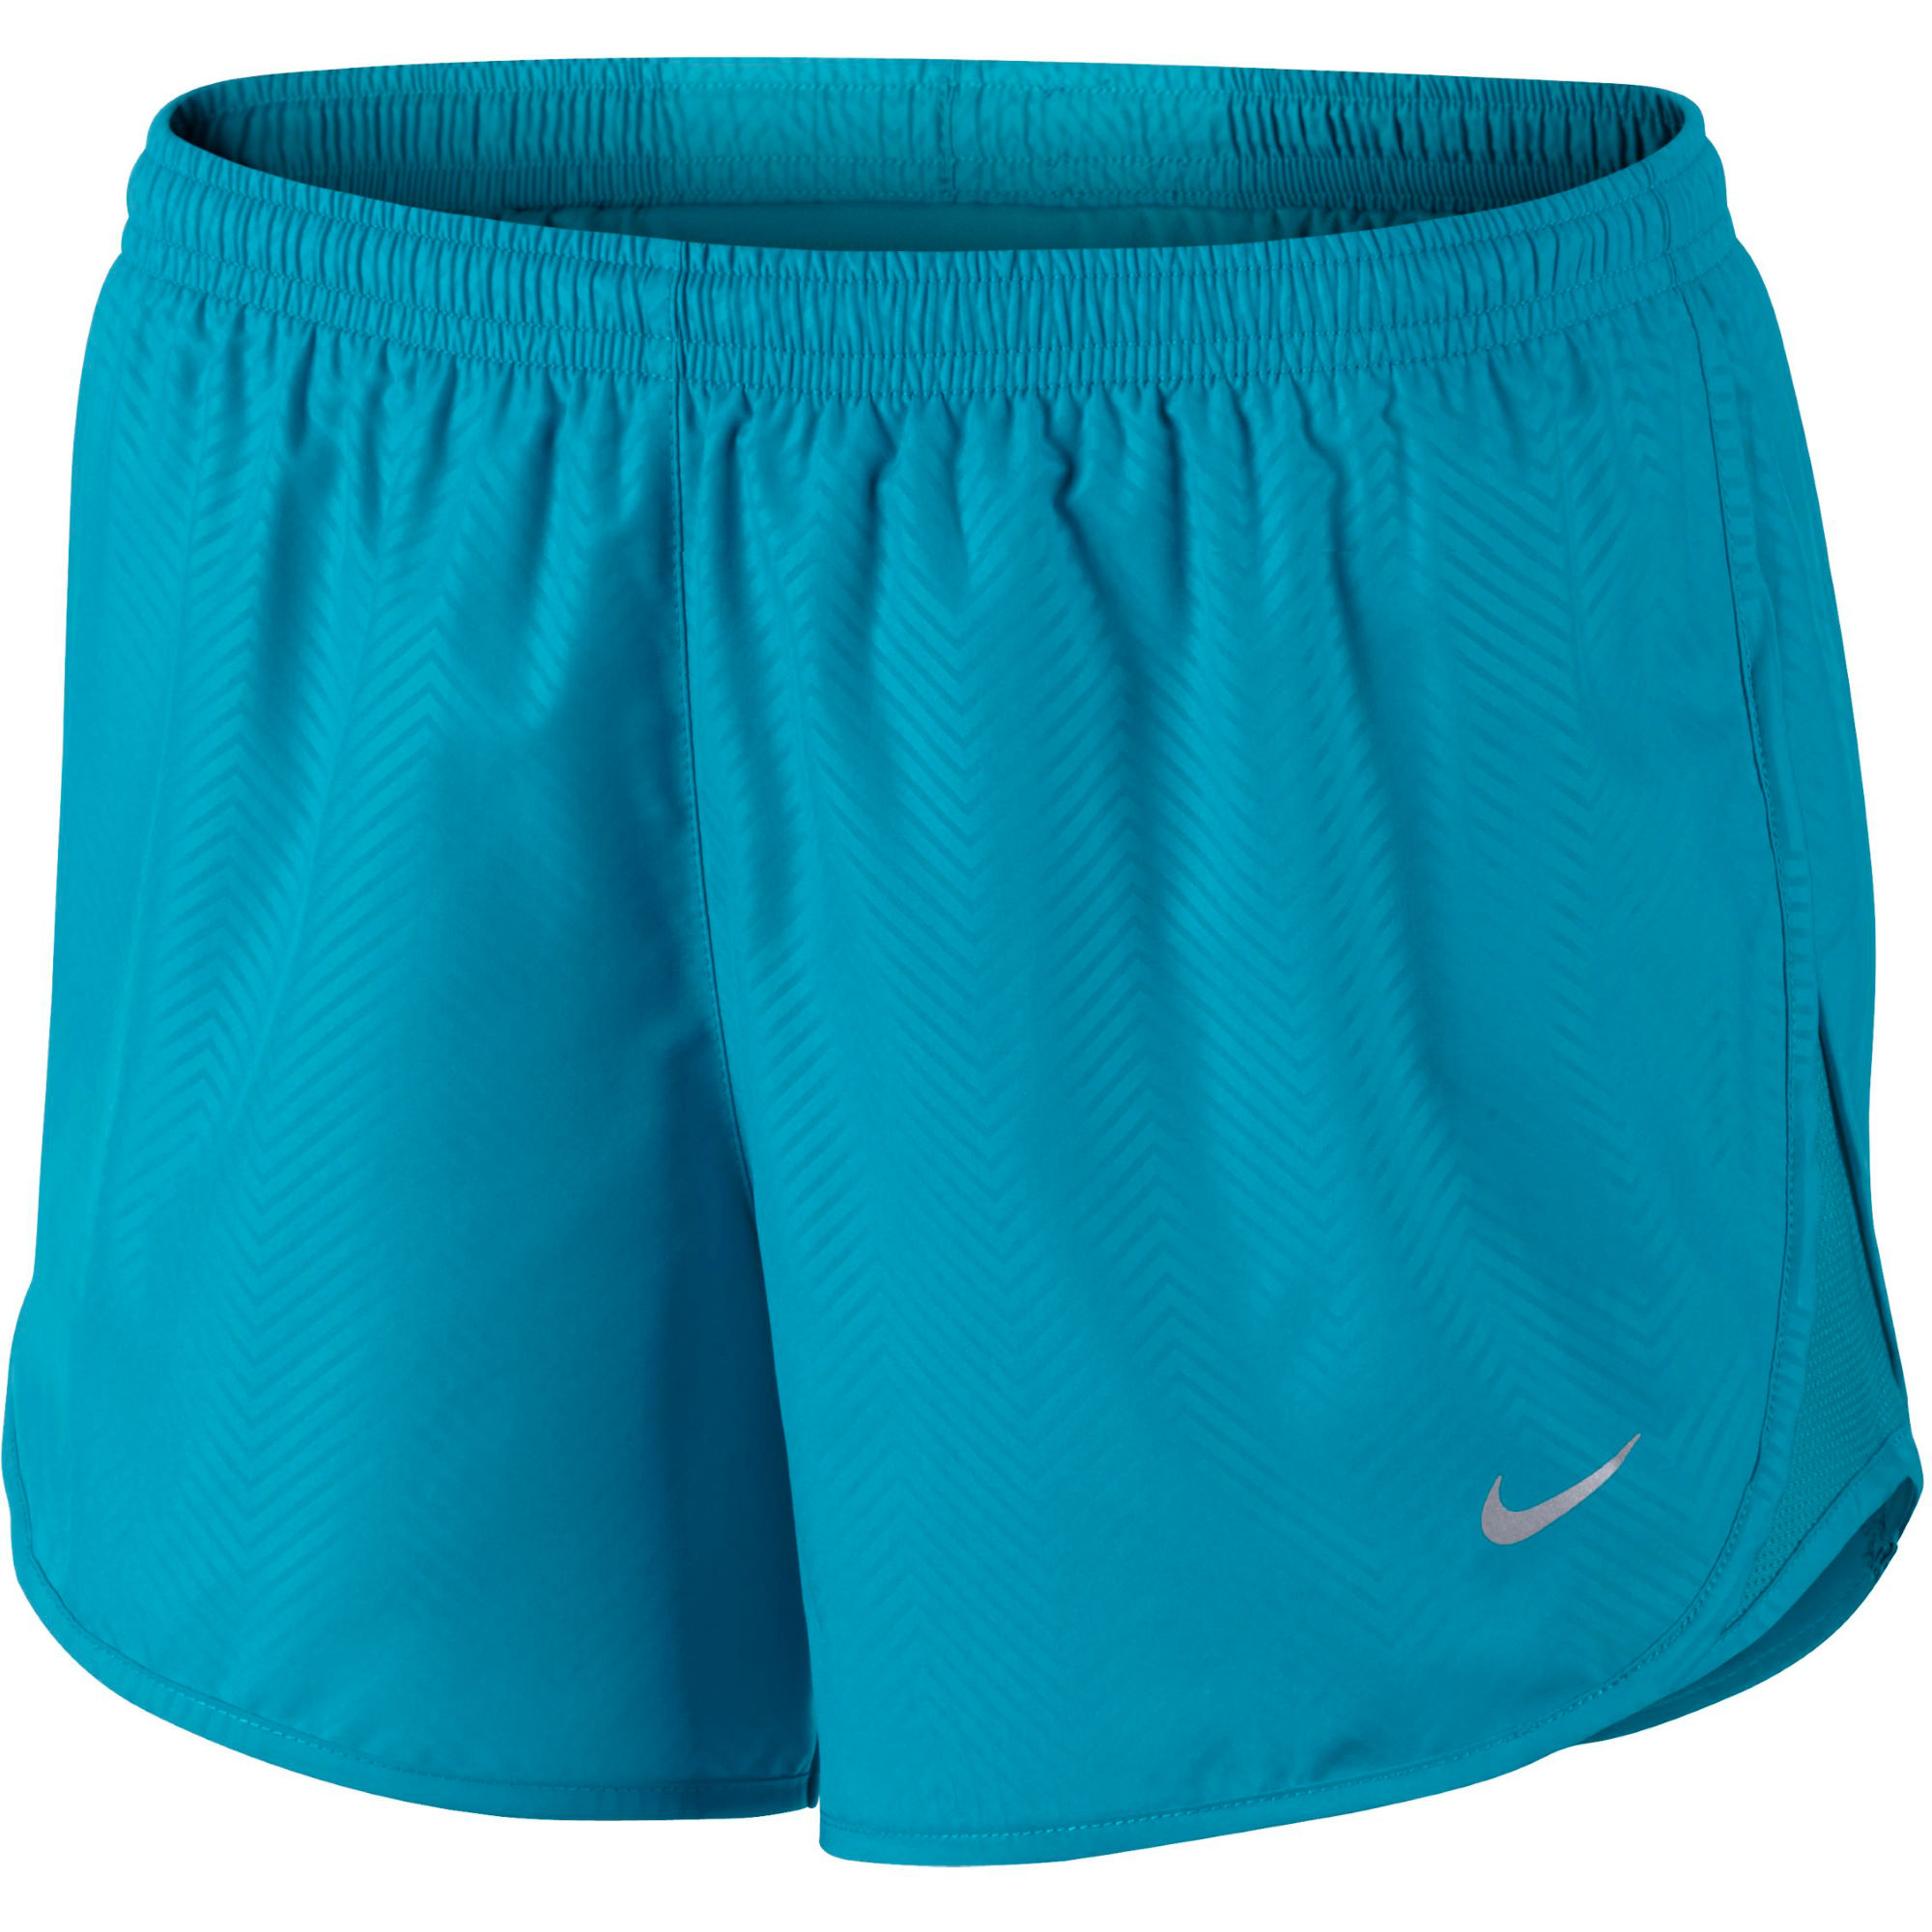 Nike womens running shorts with liner - Nike Women S Modern Embossed Tempo Sp15